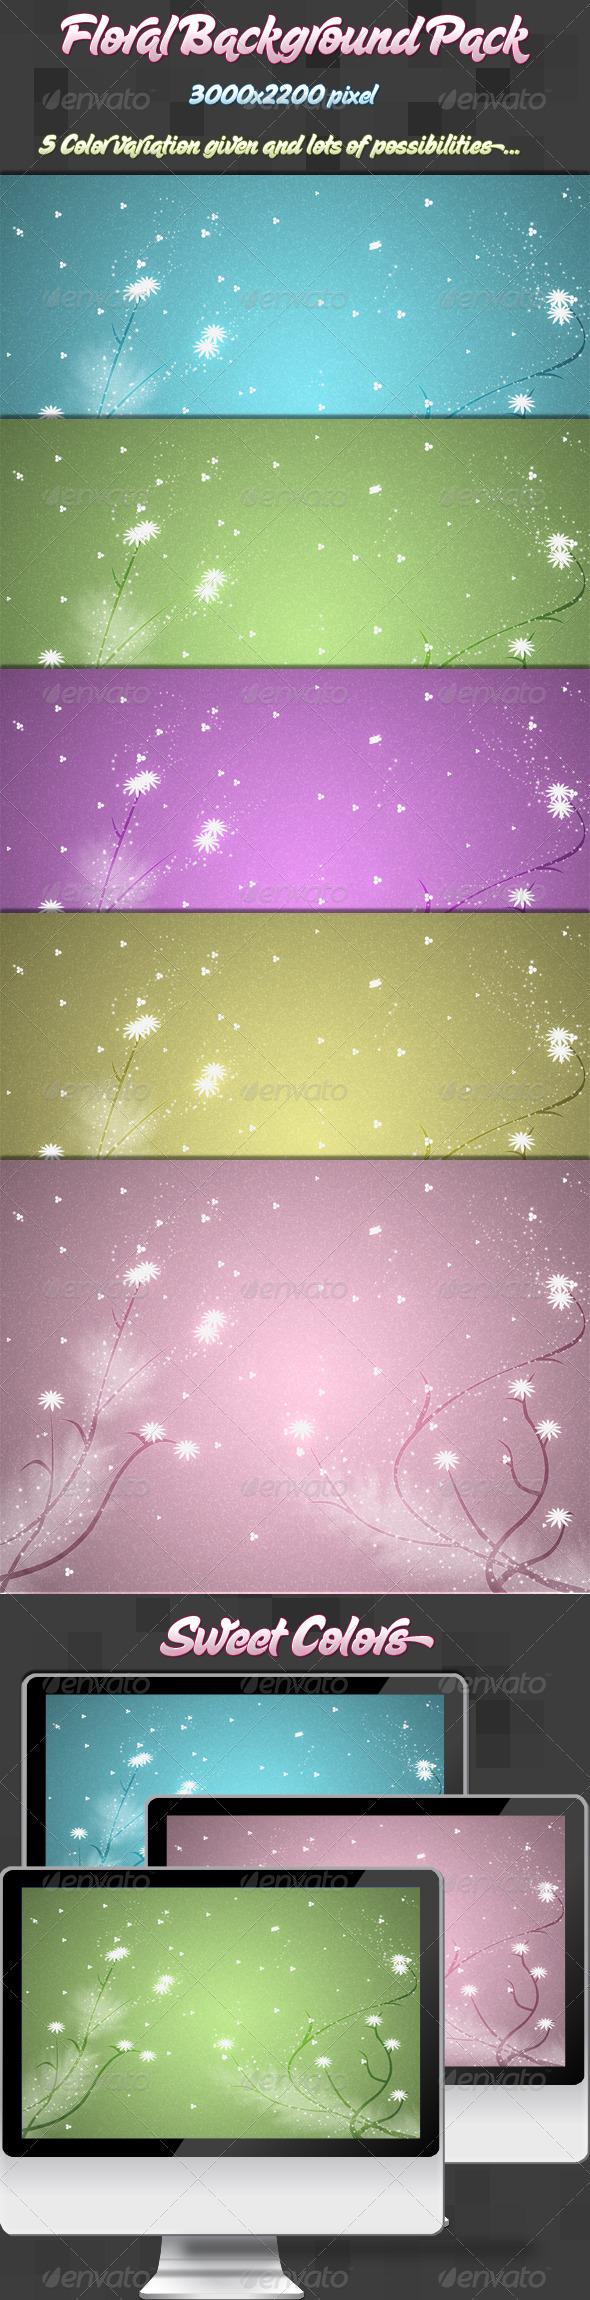 Floral Background Pack